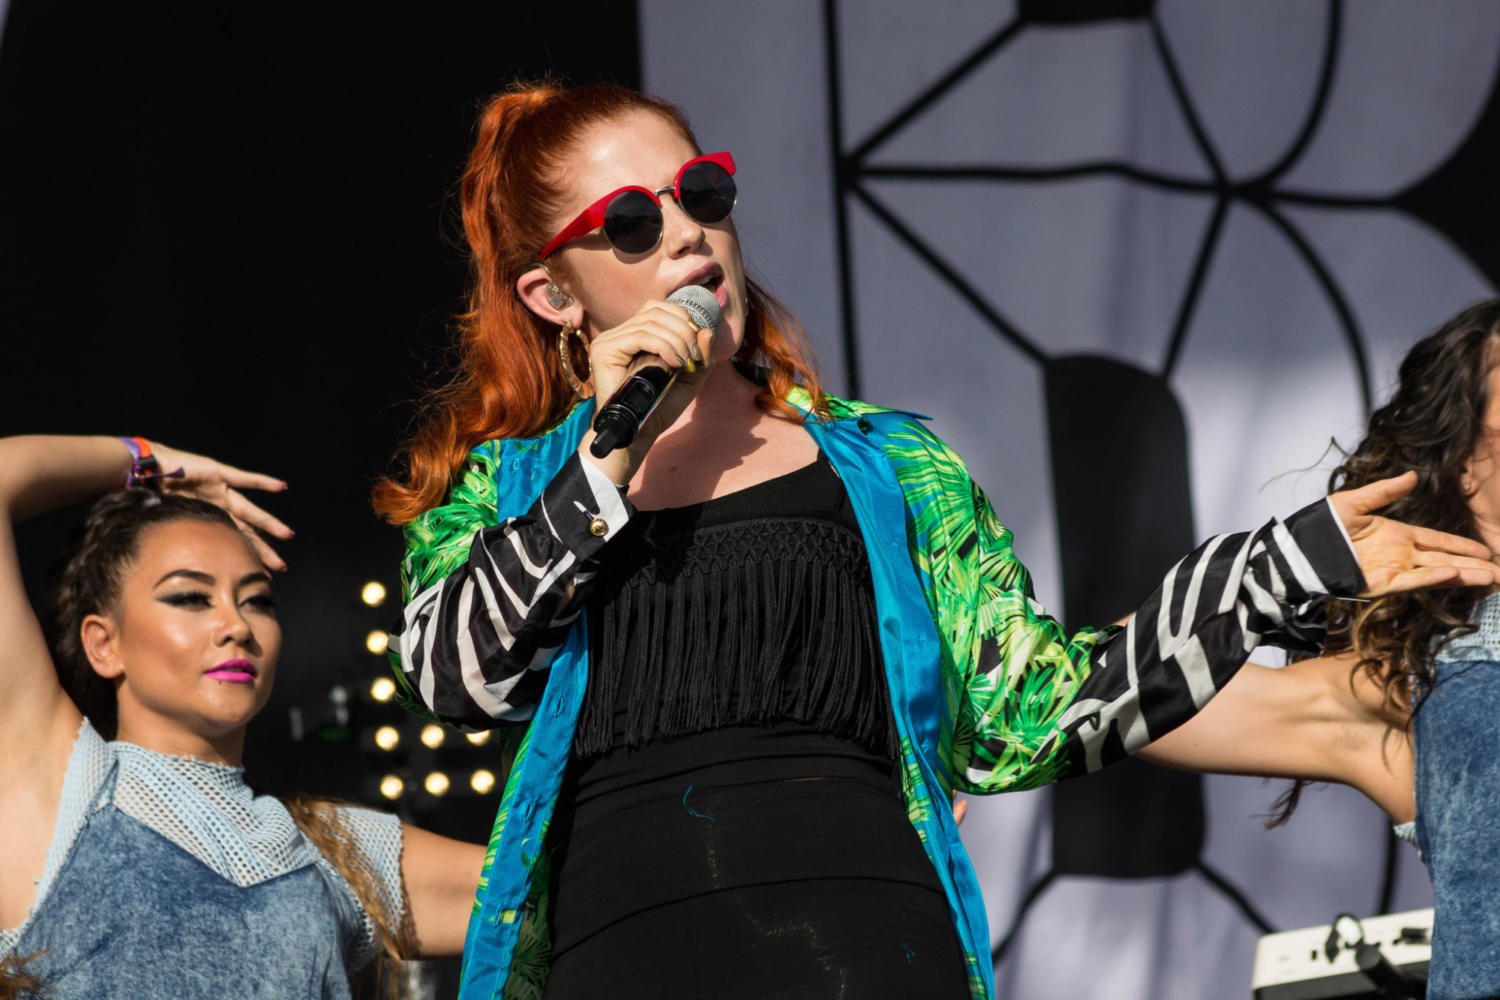 Katy B shares new track, 'Little Red Light'